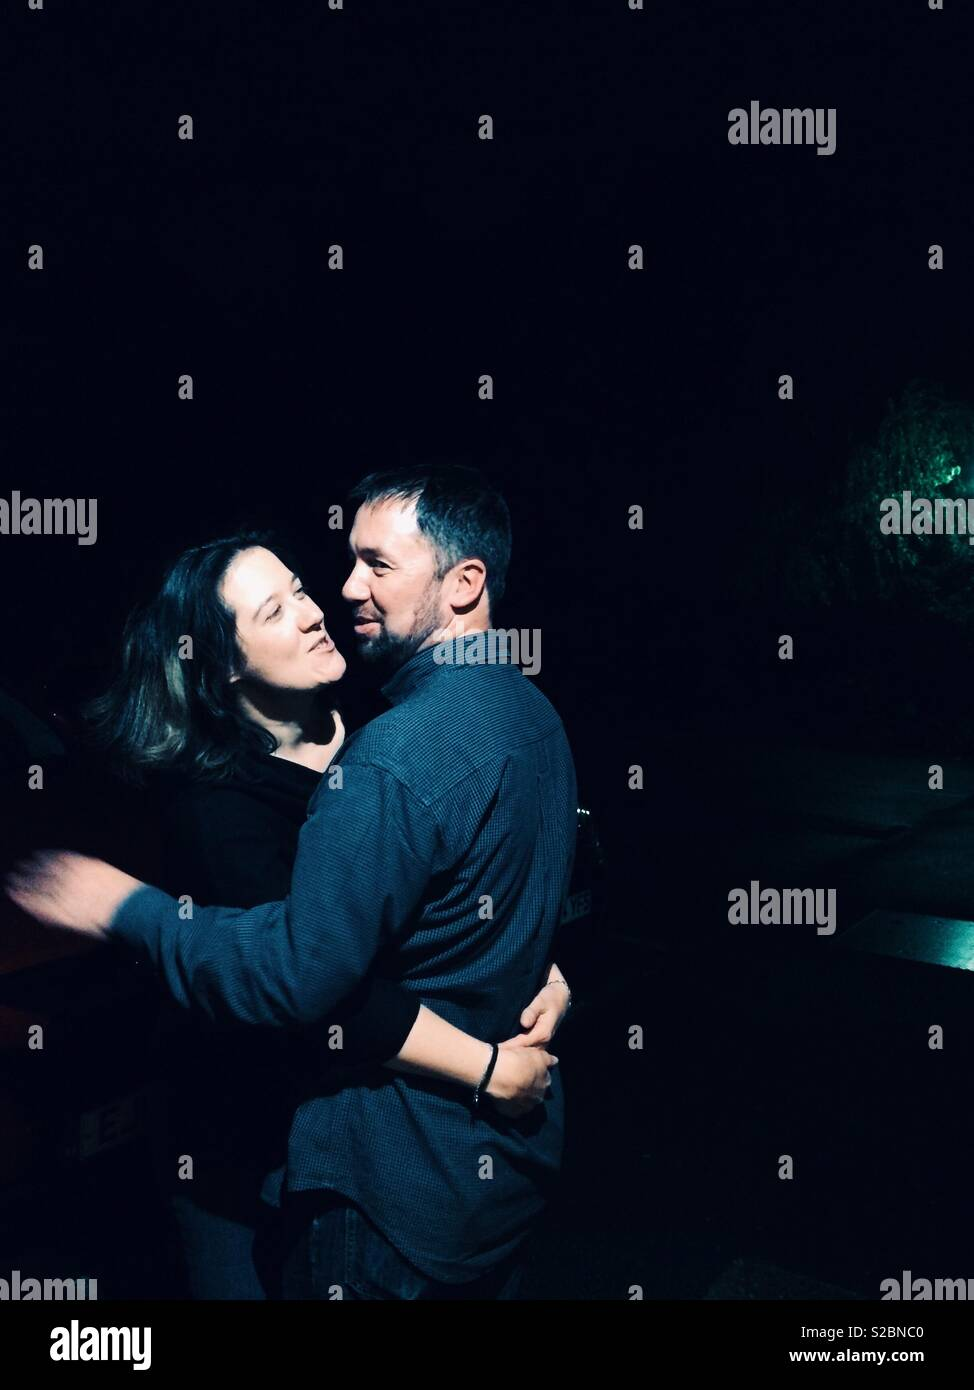 Happy couple in an intimate moment hugging and laughing. - Stock Image